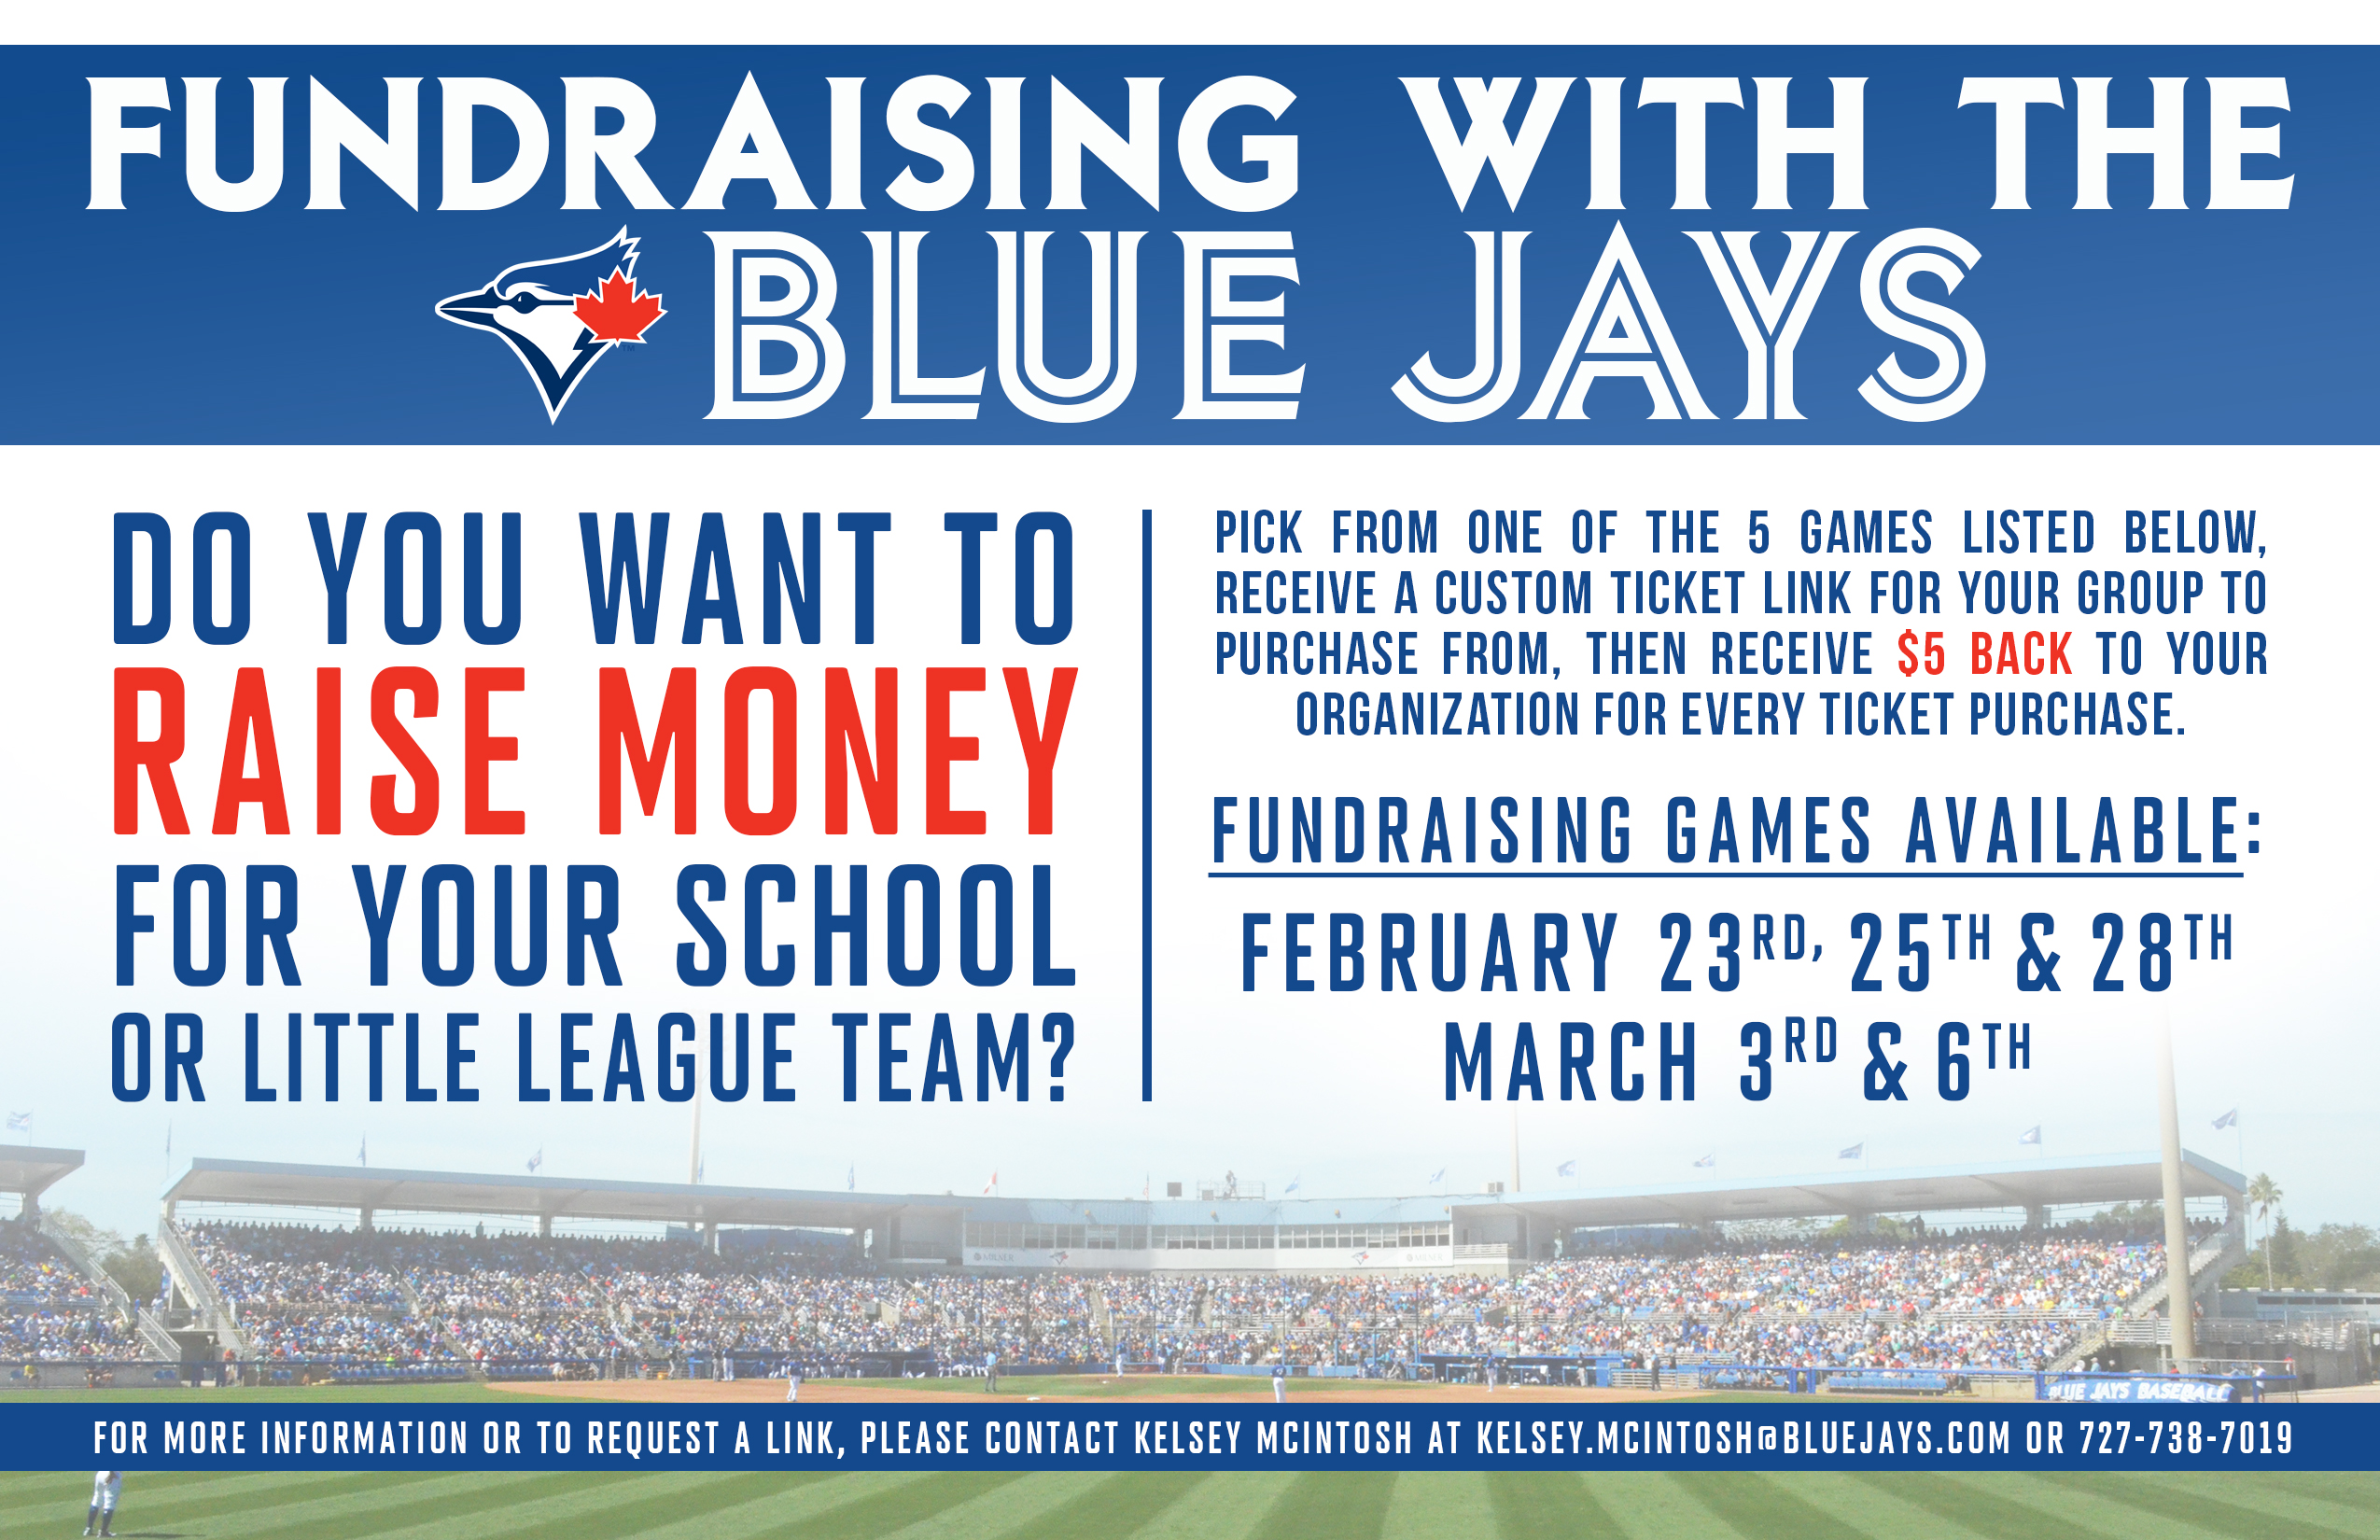 A Fundraiser Notification to get a Minor League Group